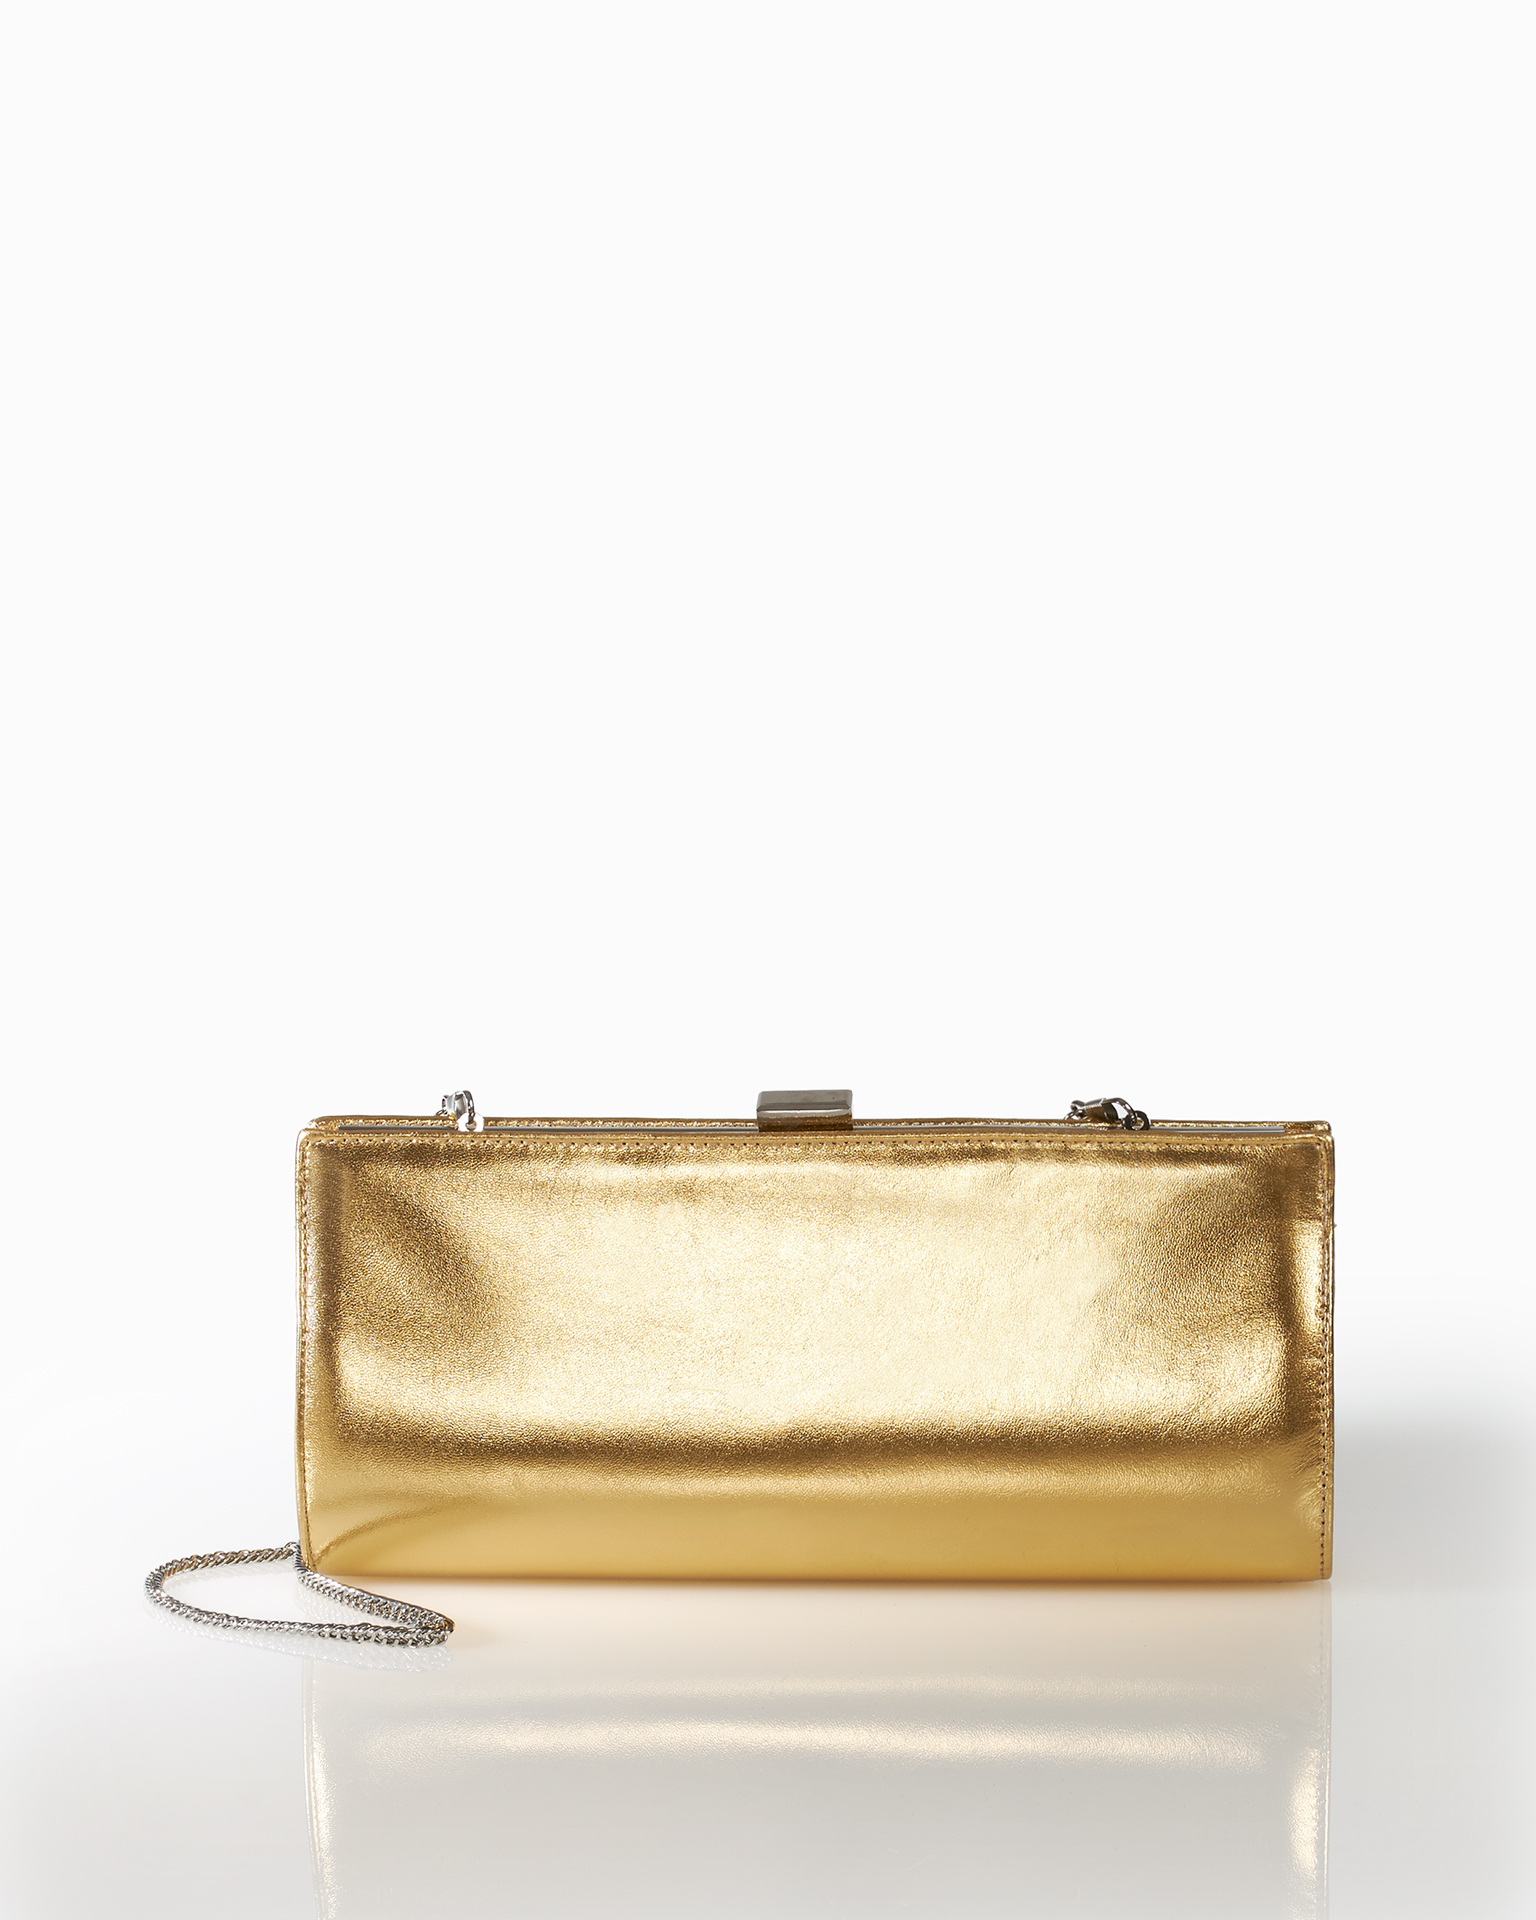 Clutch de cócktail en piel, disponible en color oro y duna. Colección FIESTA AIRE BARCELONA 2018.